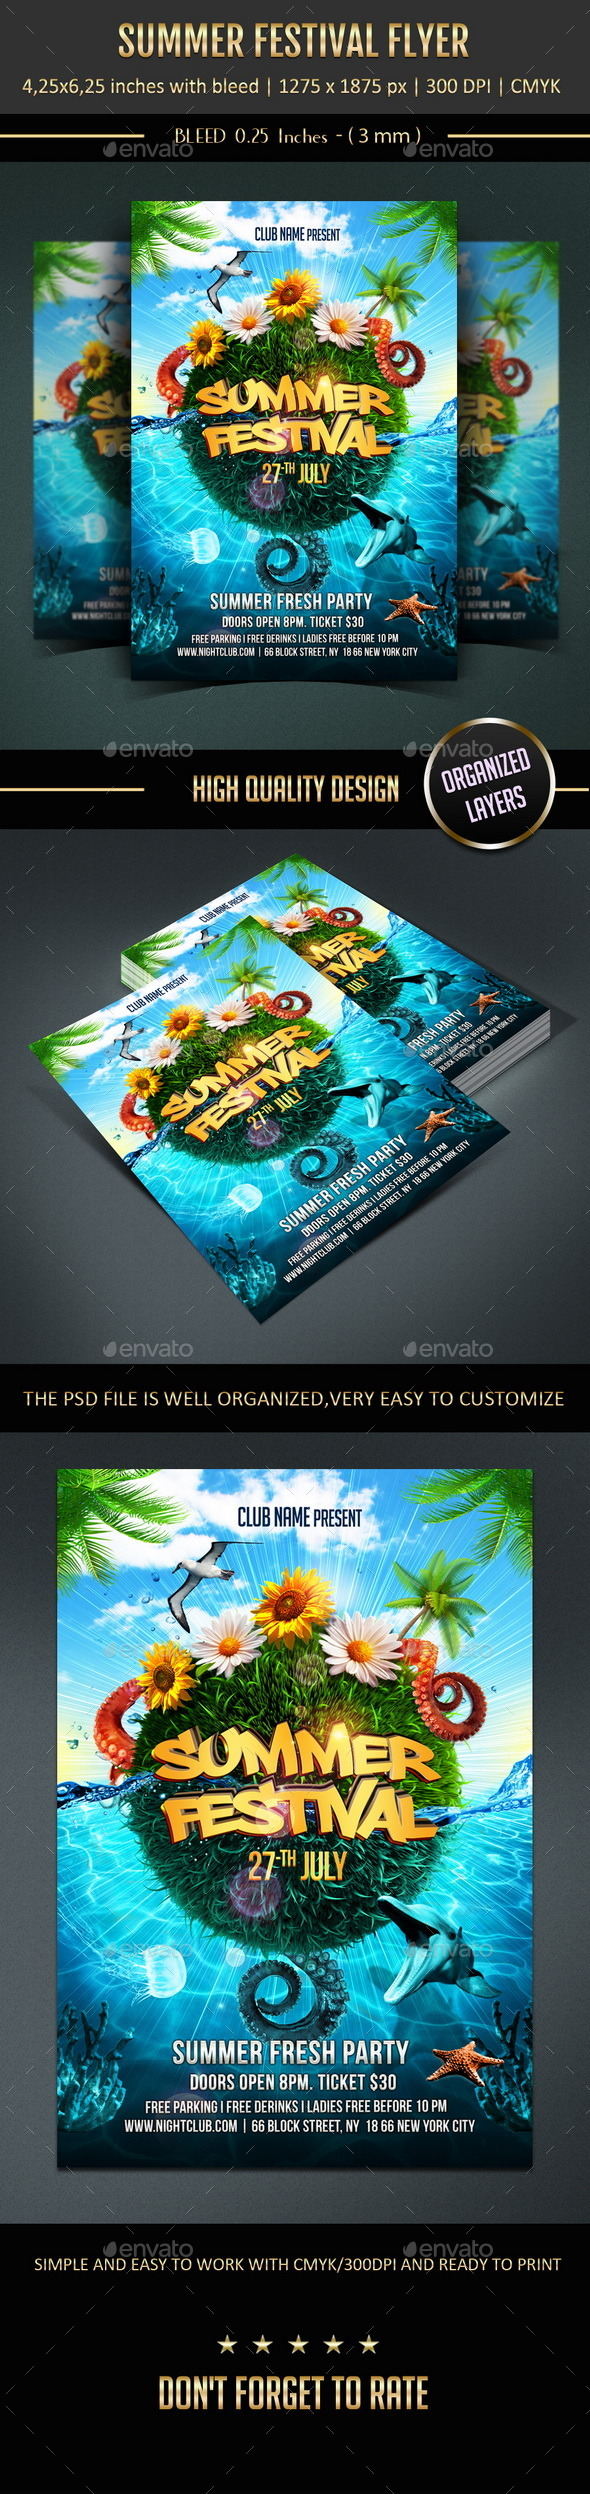 GraphicRiver Summer Festival Flyer 11031434